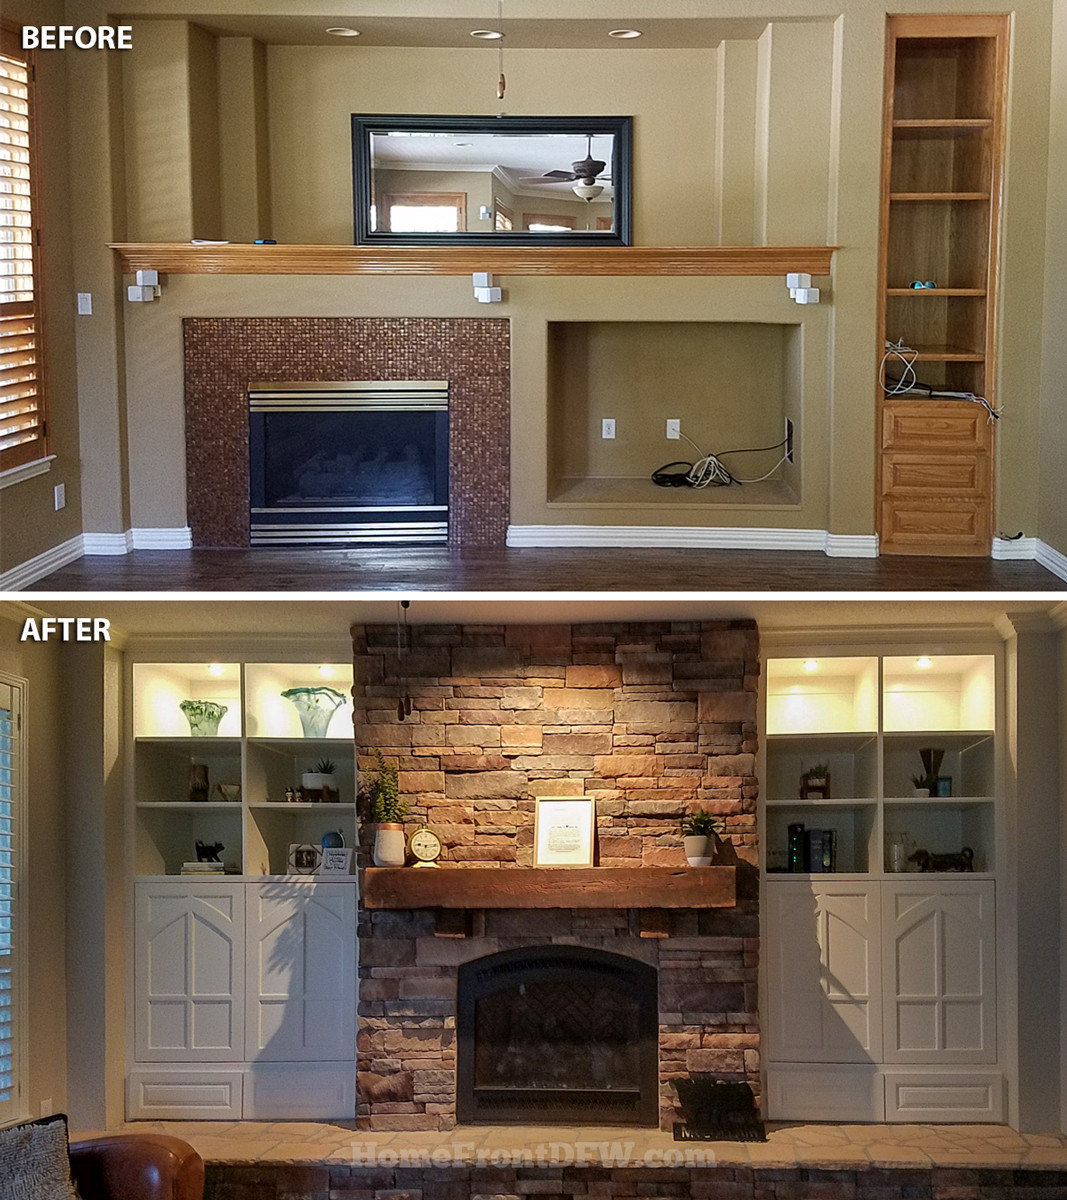 McCollam-fireplace-before-after